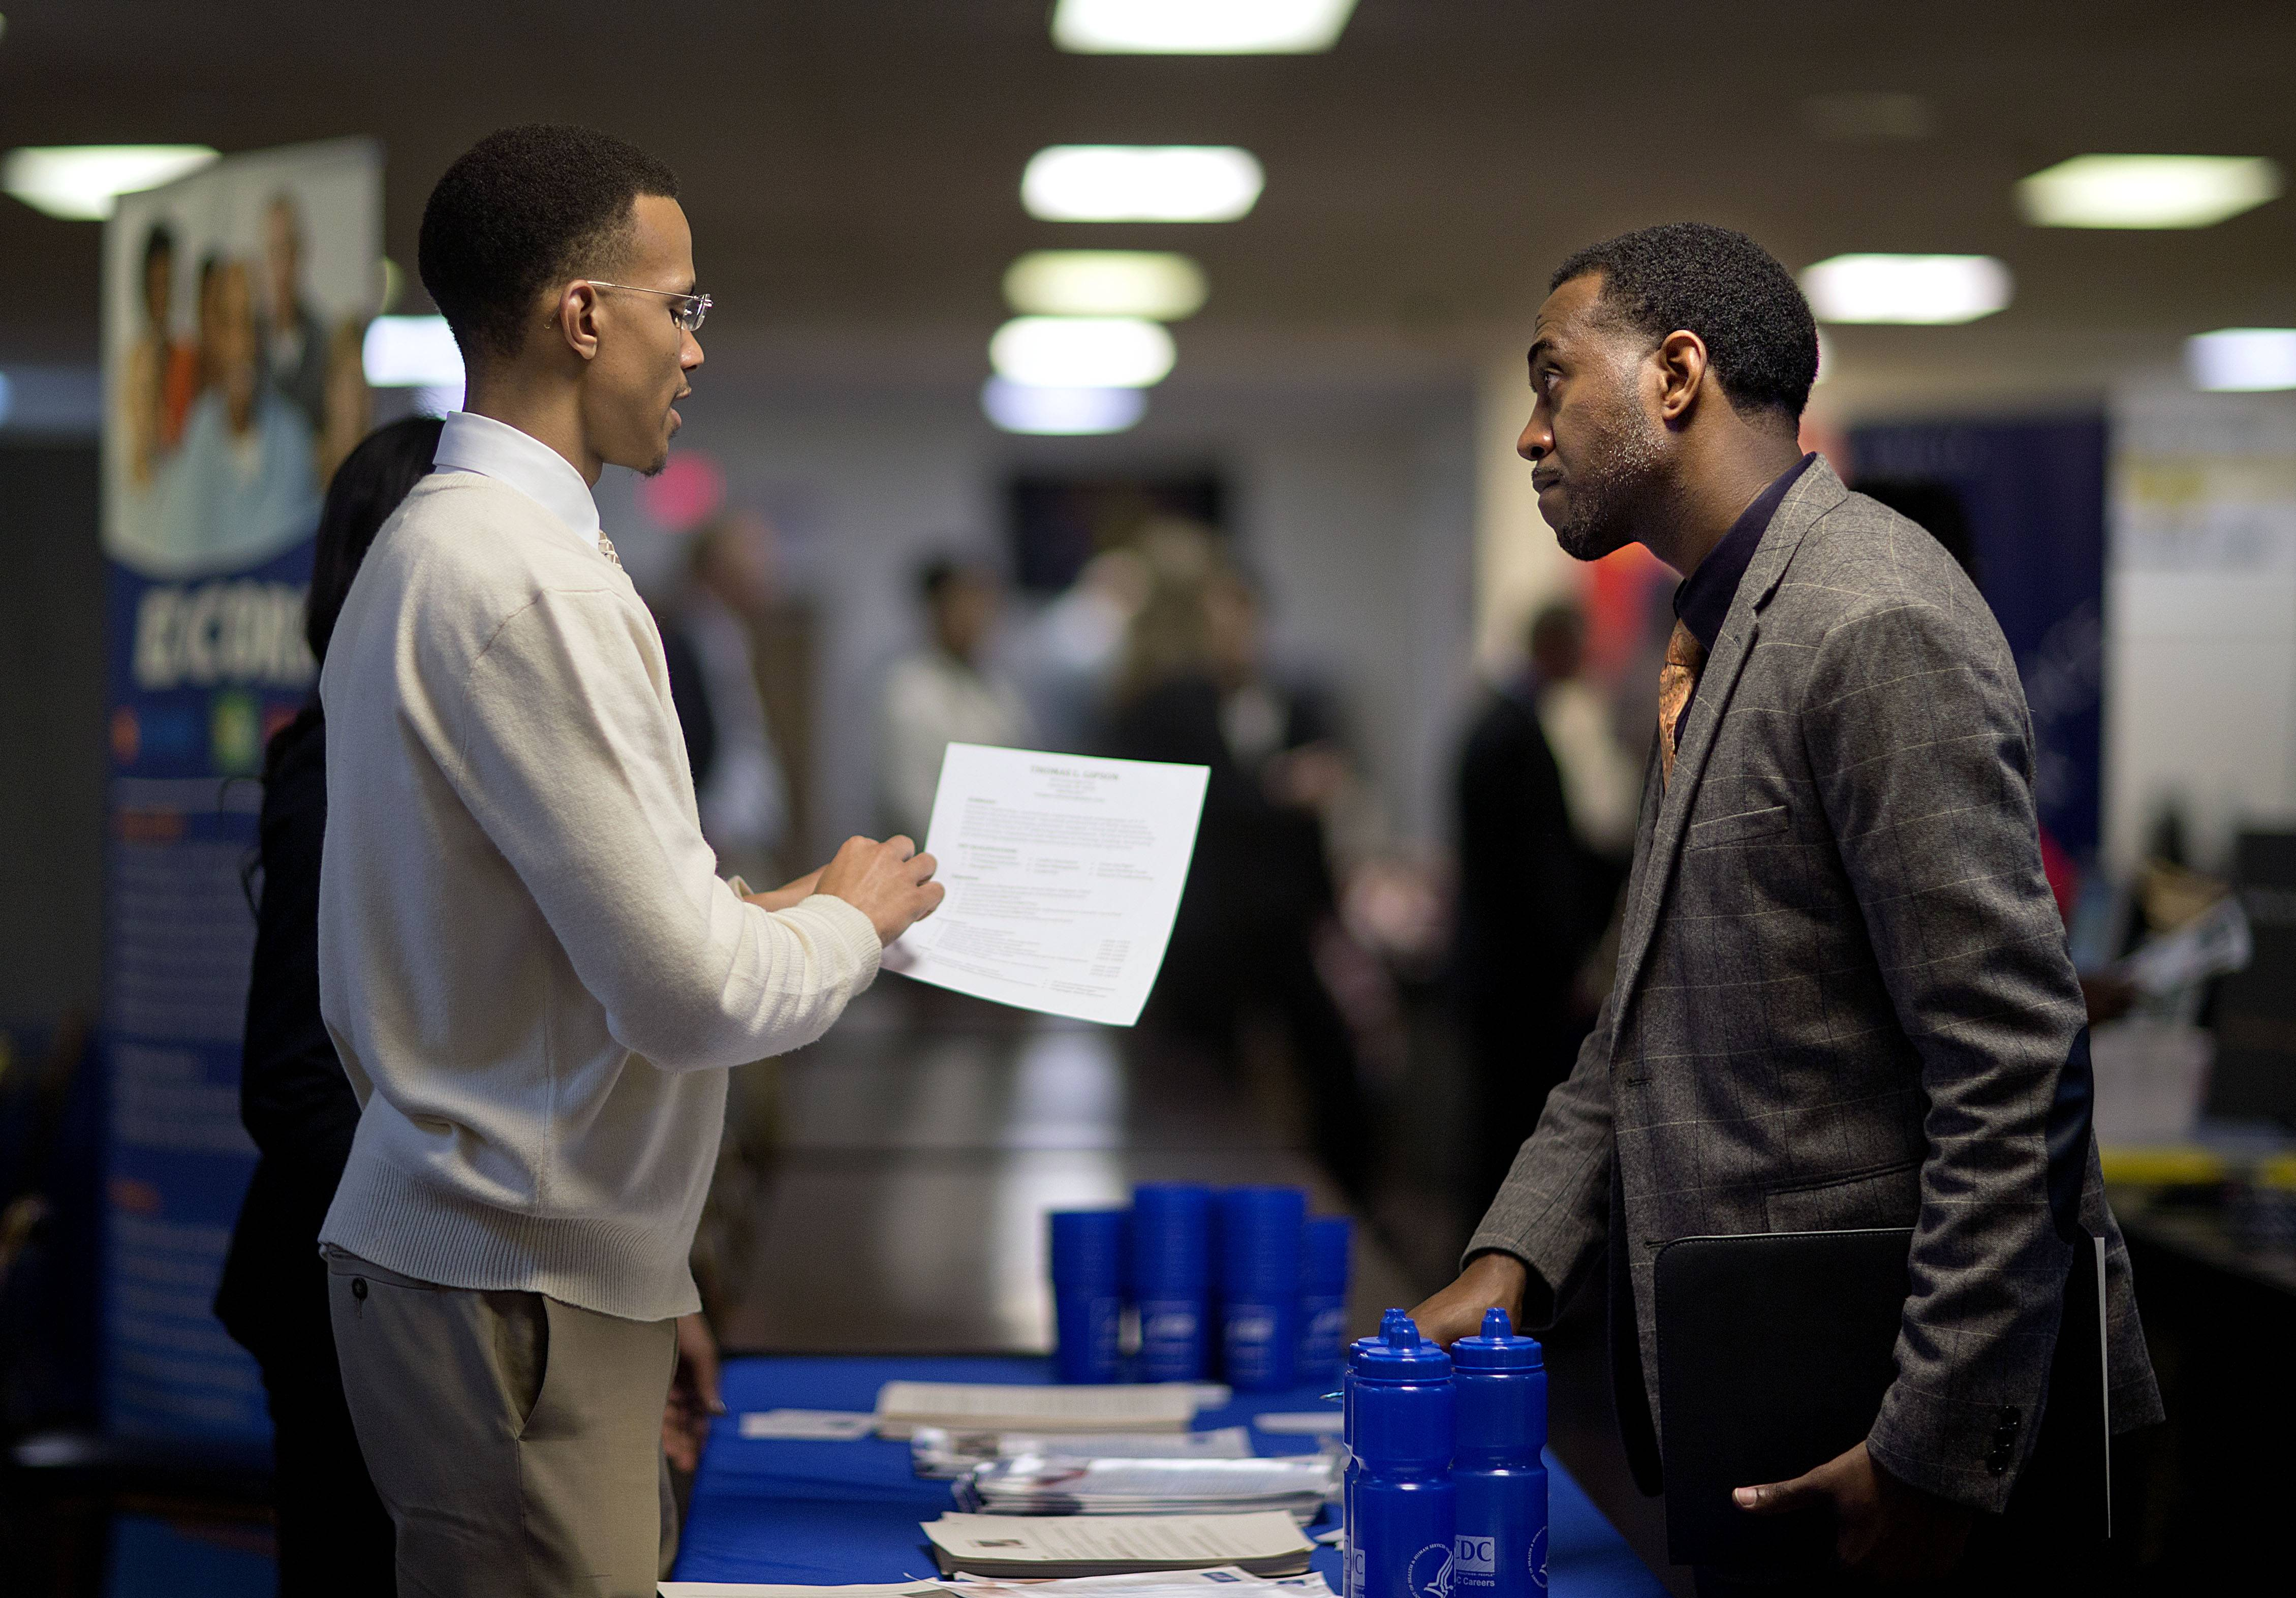 More than two-thirds of the states reported job gains in March, as hiring has improved for much of the country during what has been a sluggish but sustained 4 1/2-year recovery.